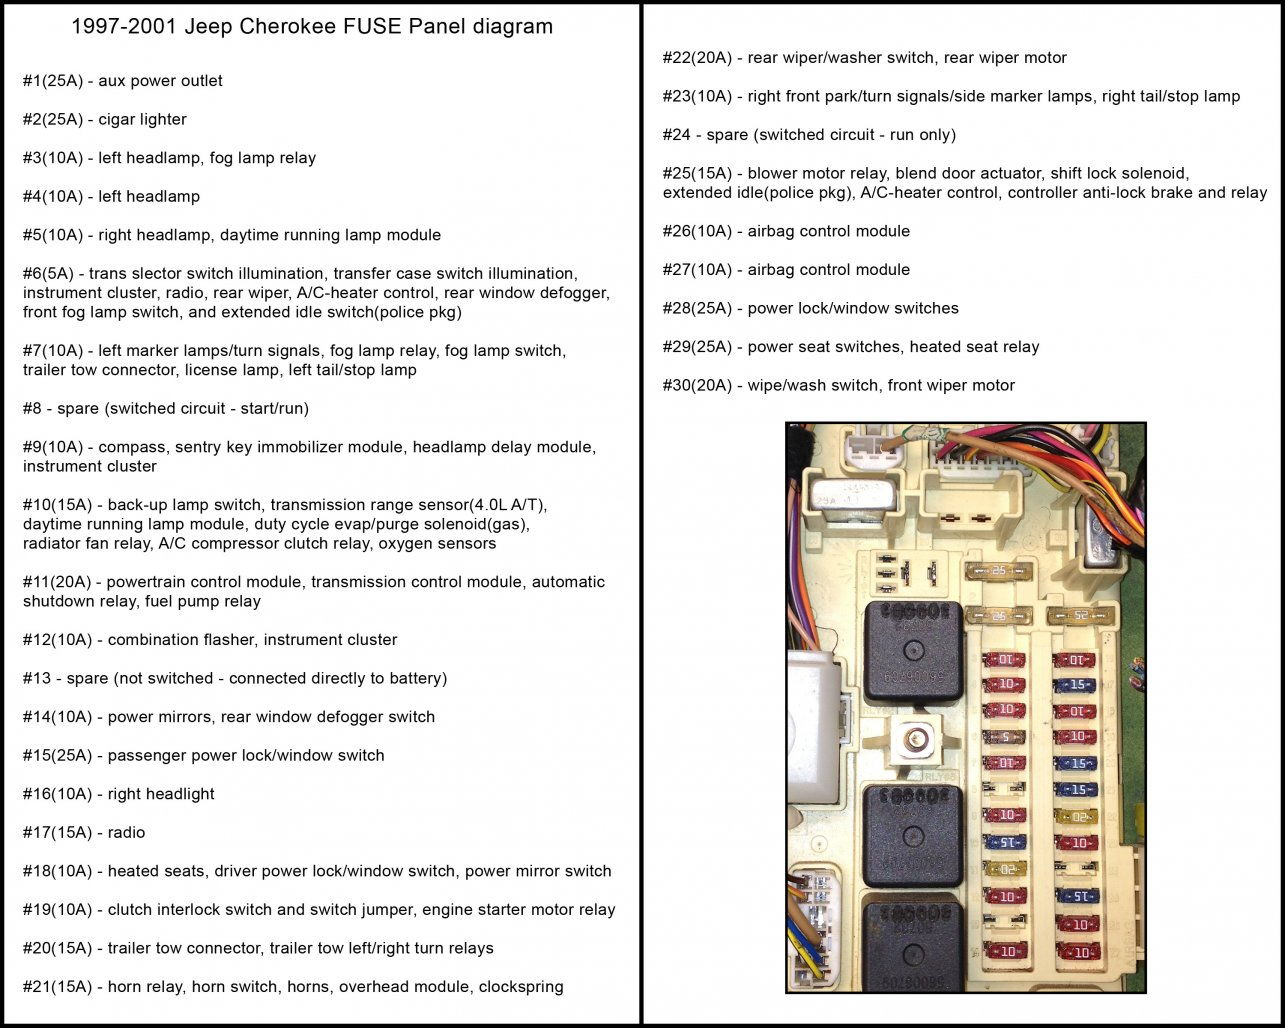 Wiring Diagram For 1996 Jeep Cherokee Sport on 2000 jeep cherokee sport fuse box location